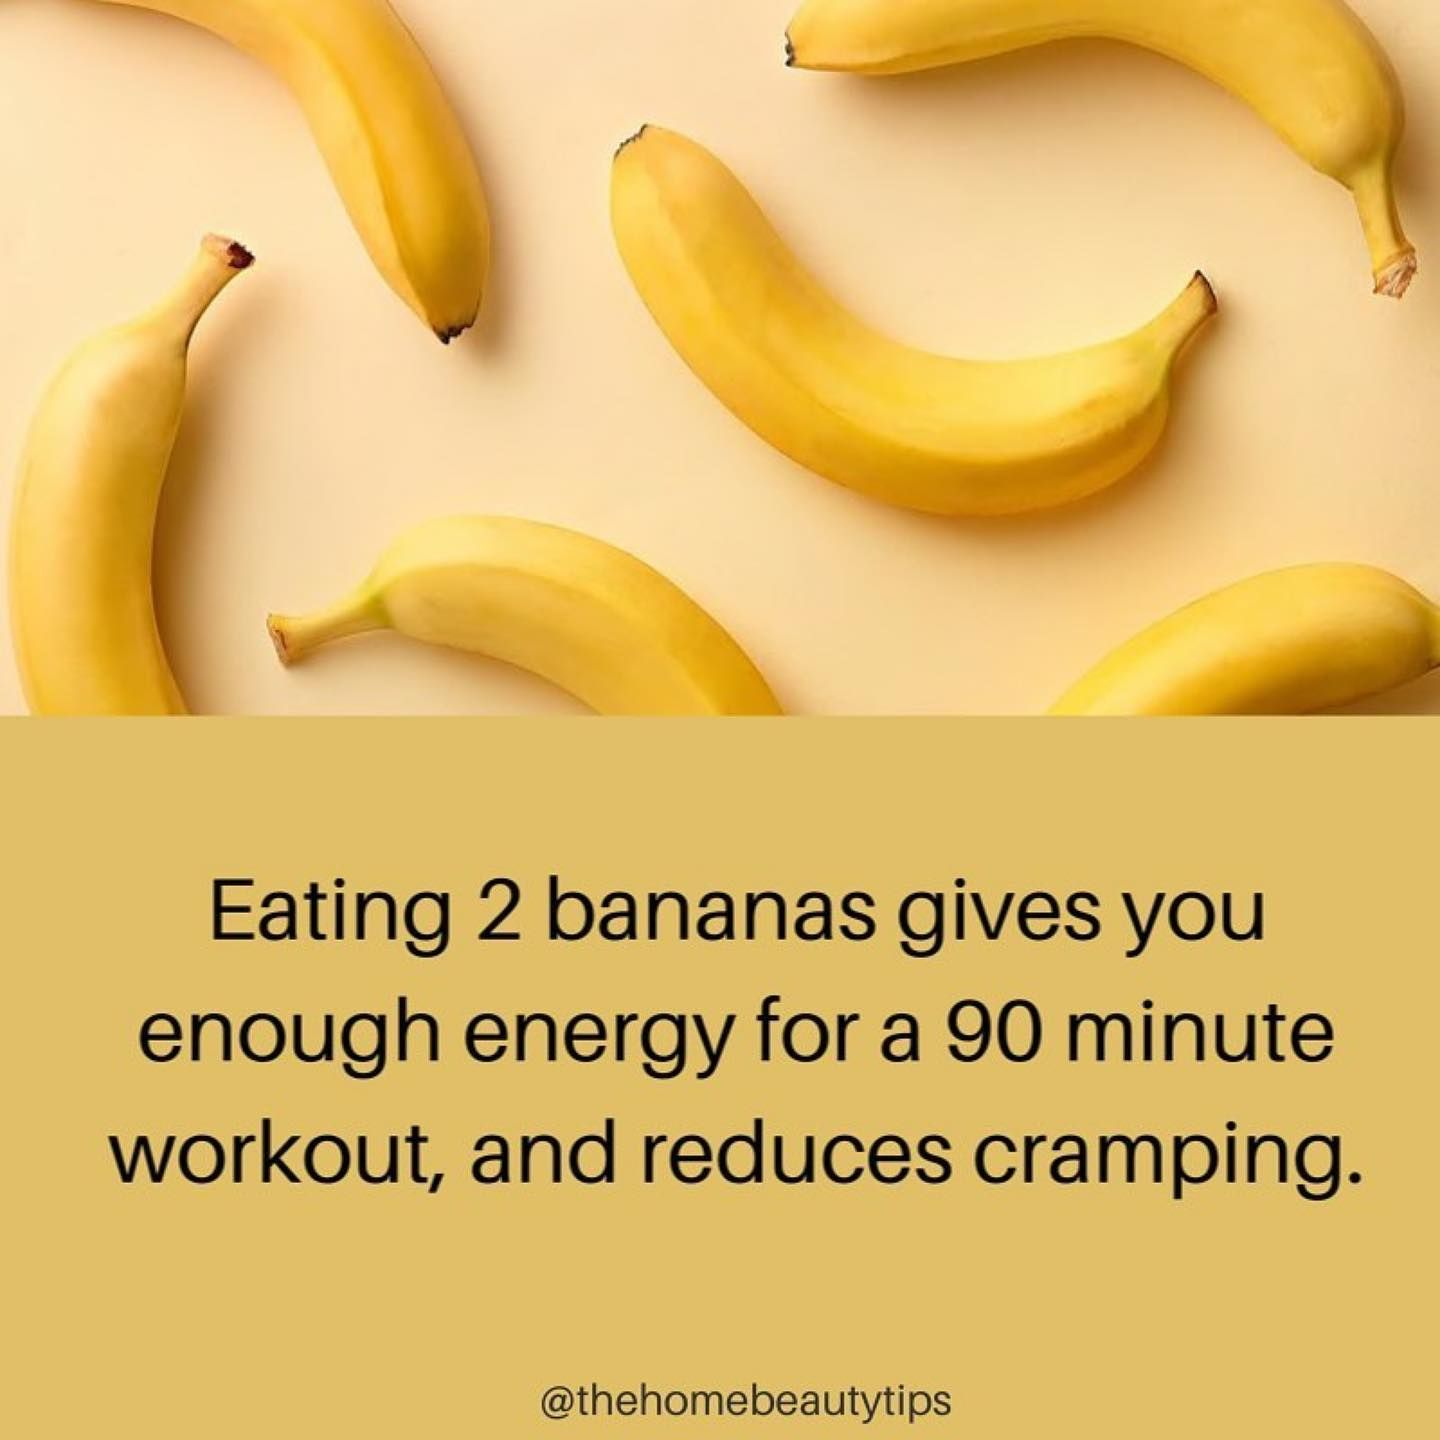 Eating 11 bananas gives you enough energy for a 11 minute workout